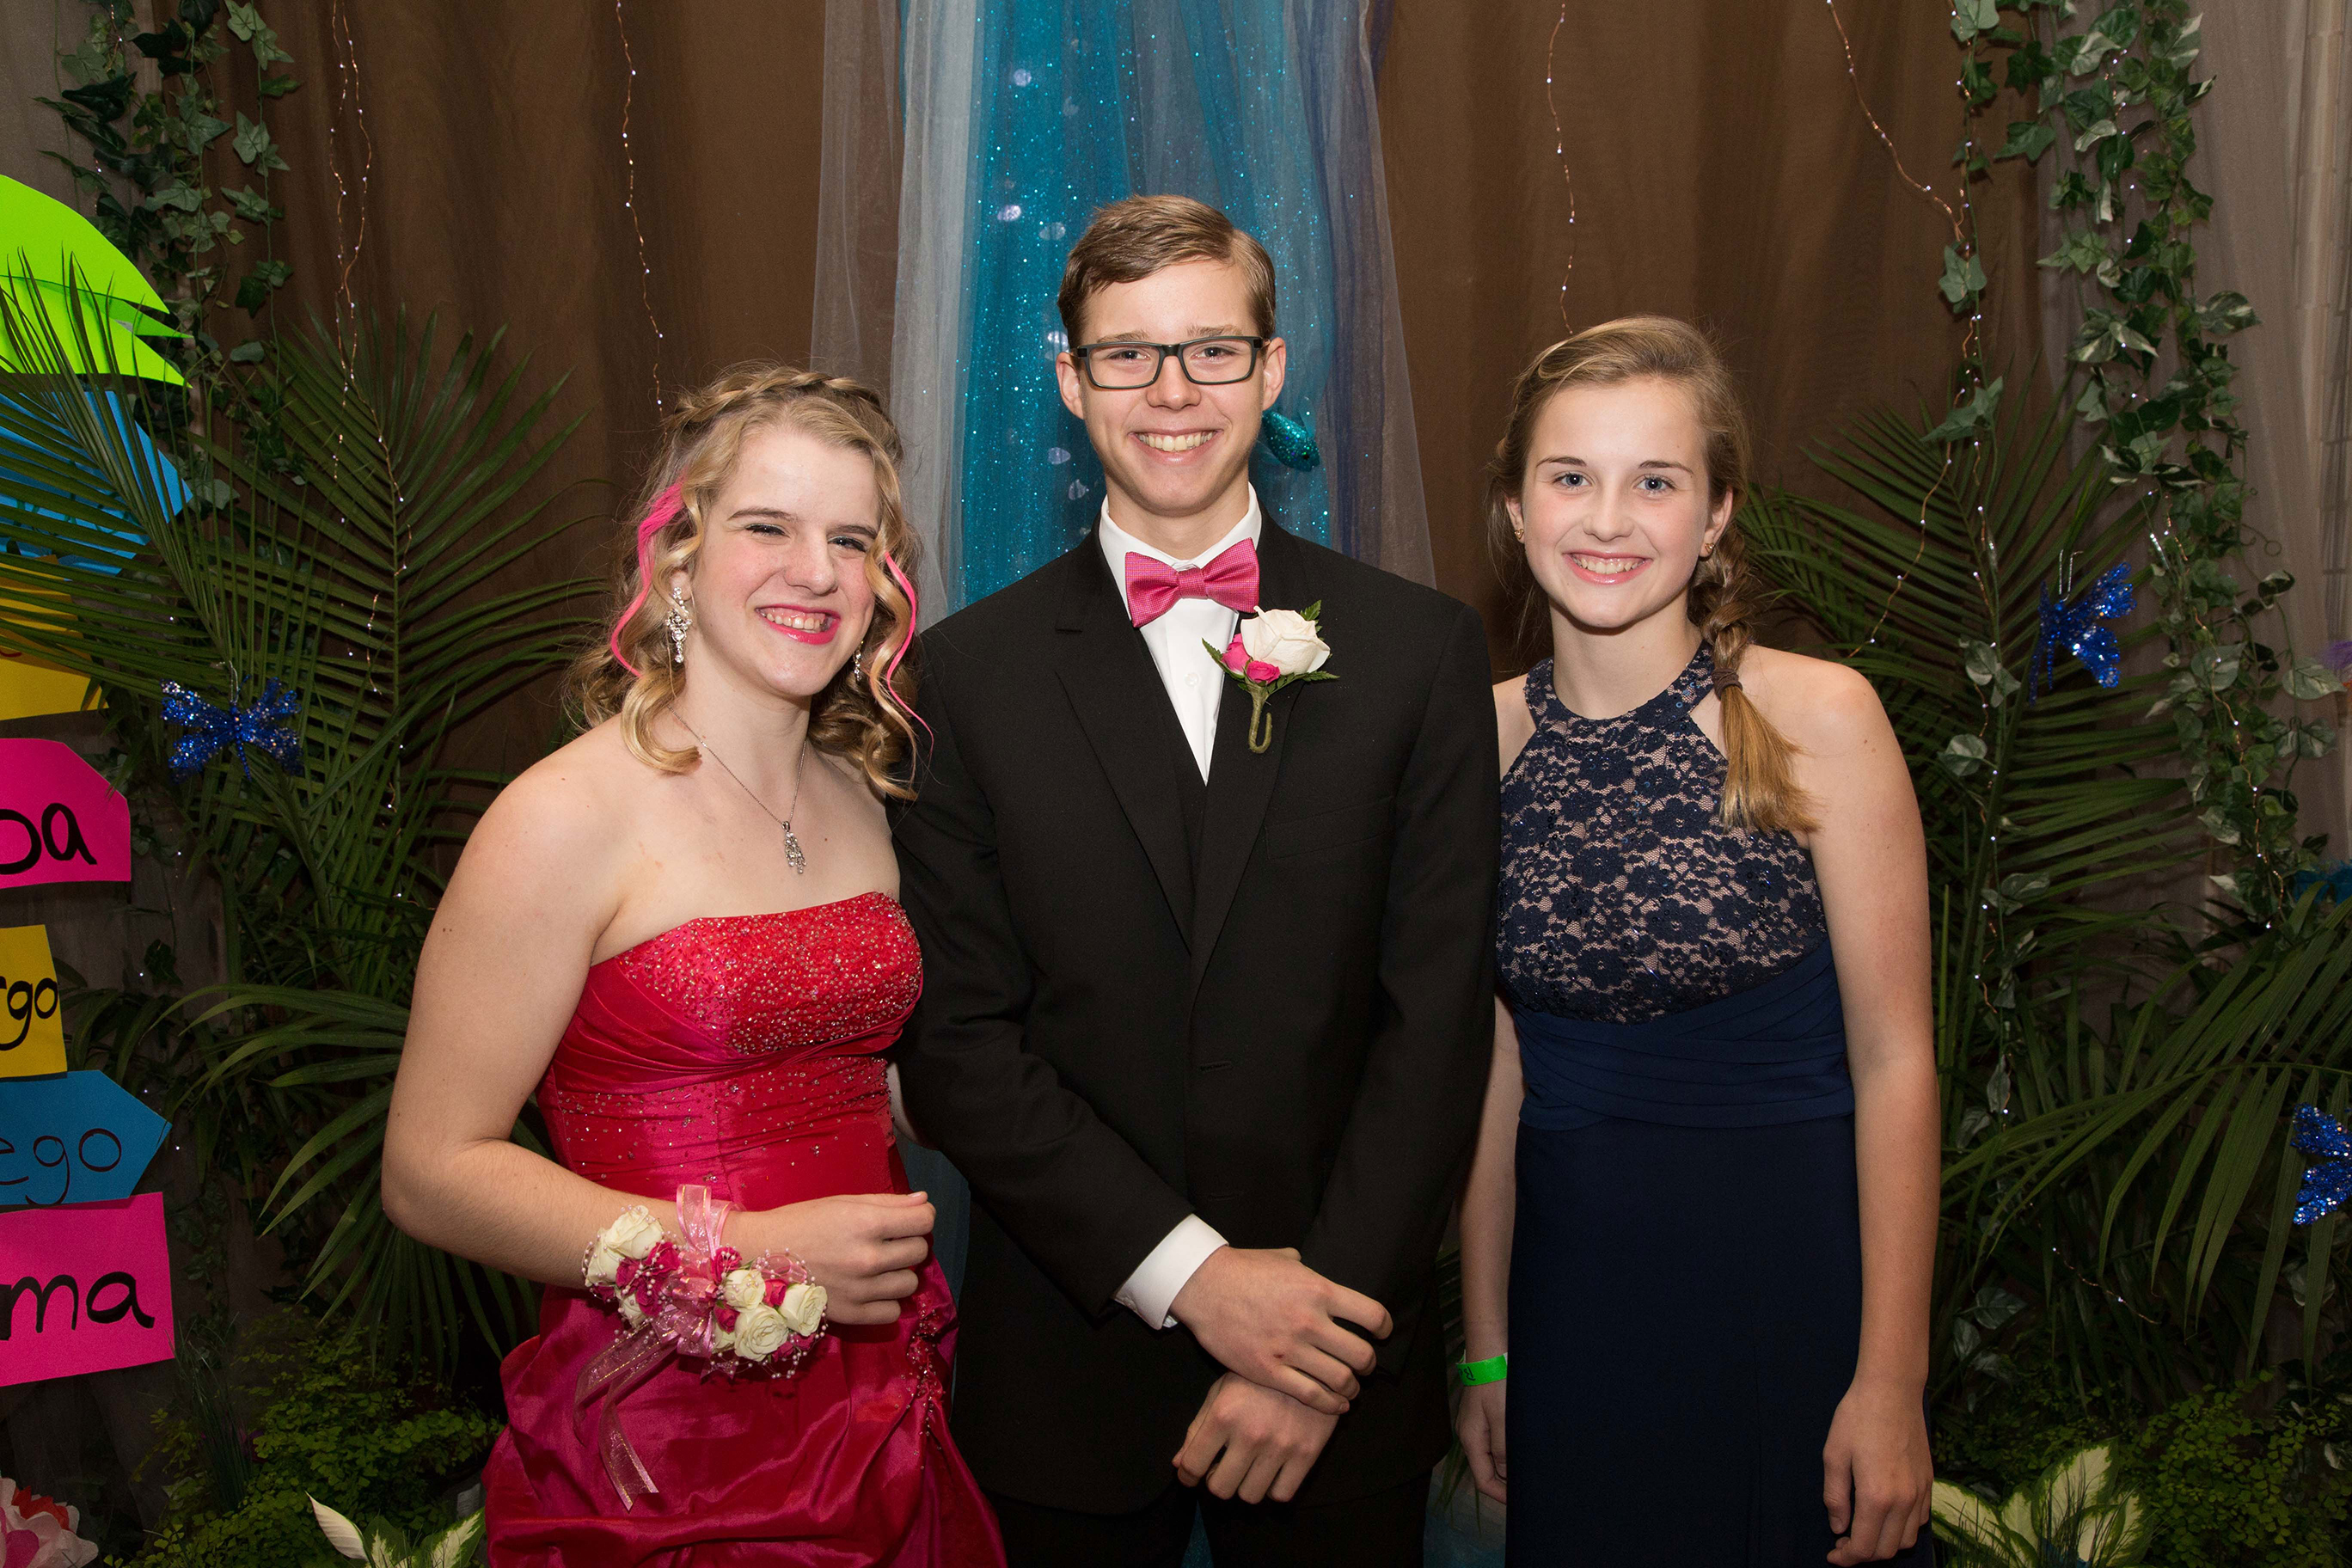 Brenna Kahlen with her prom guests